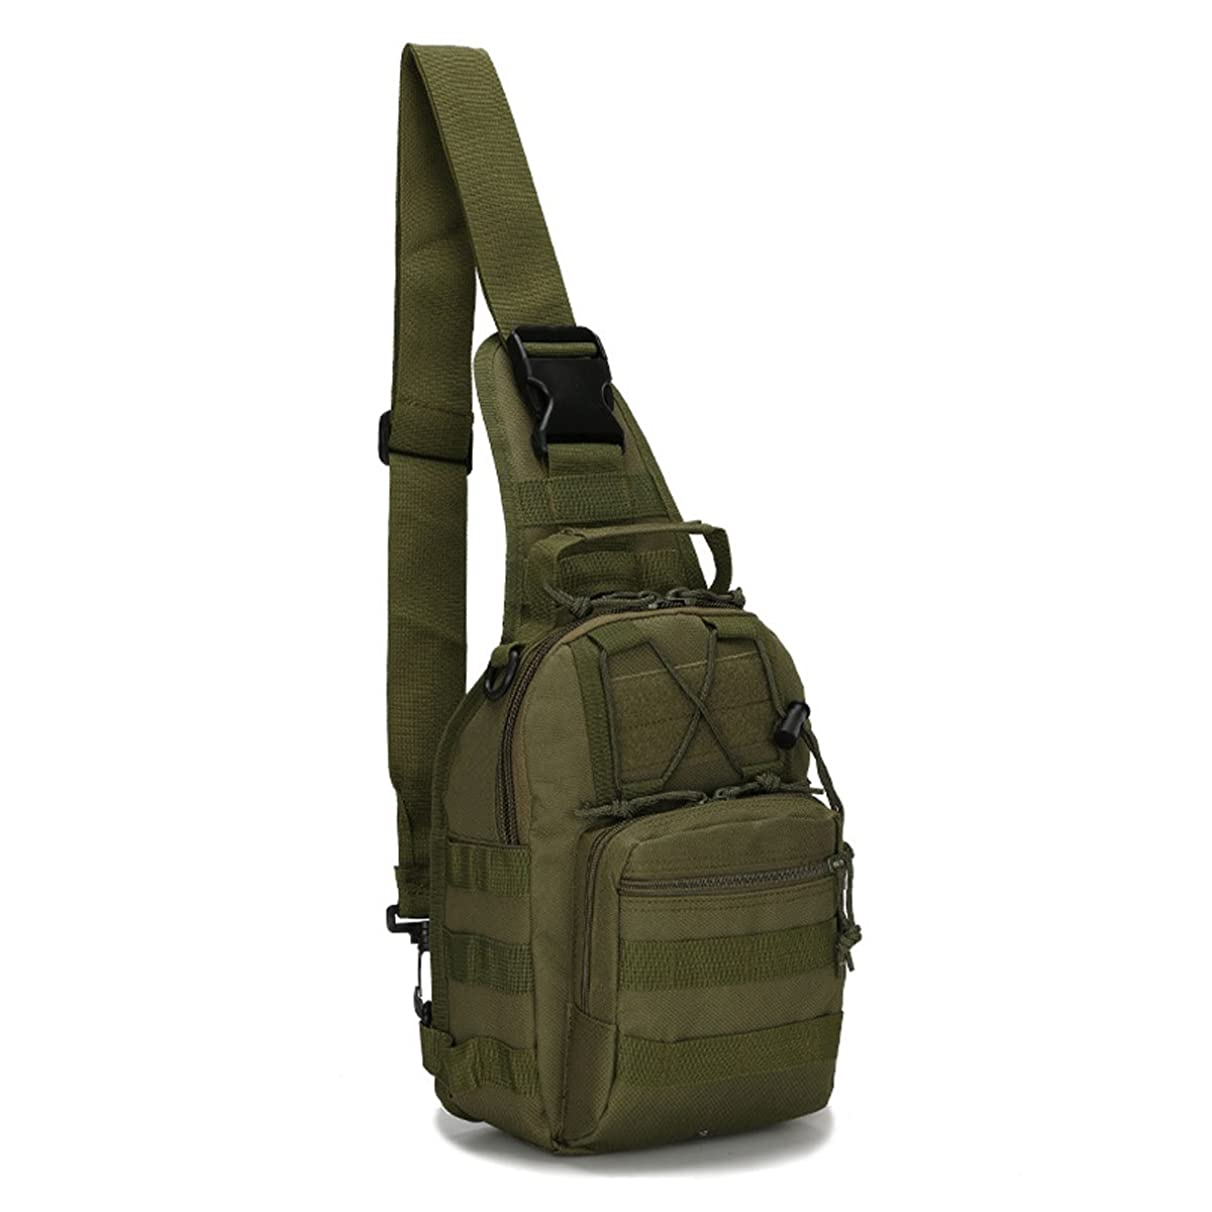 Dunnta Tactical Sling Bag, Military Sport Bag EDC Molle Pack Daypack for Camping, Hiking, Trekking, Rover Sling